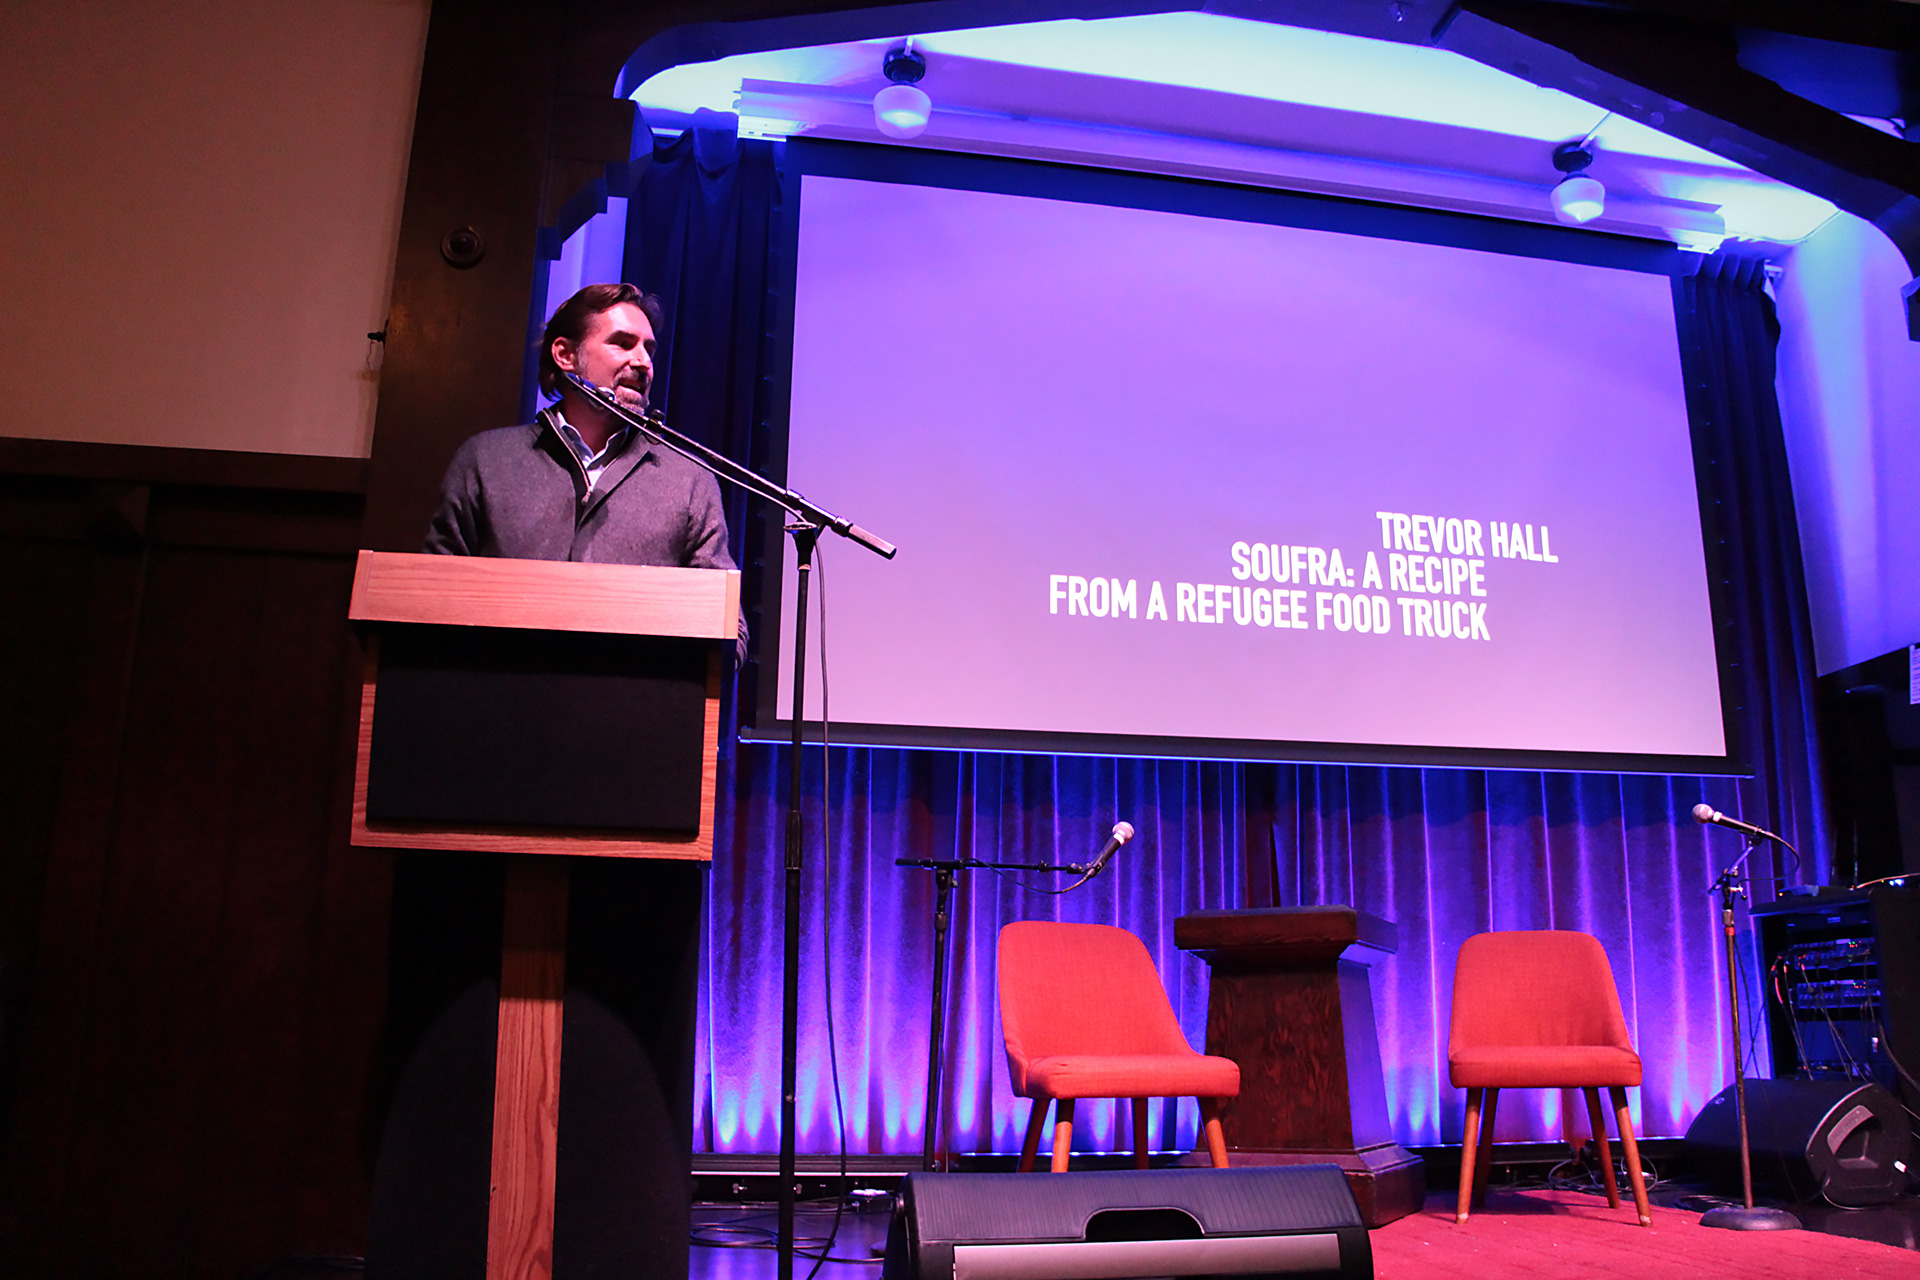 The most powerful example of the connection between food and refuge came in film clips from an upcoming documentary called: Soufra: A Recipe from a Refugee Food Truck, presented by producer Trevor Hall.